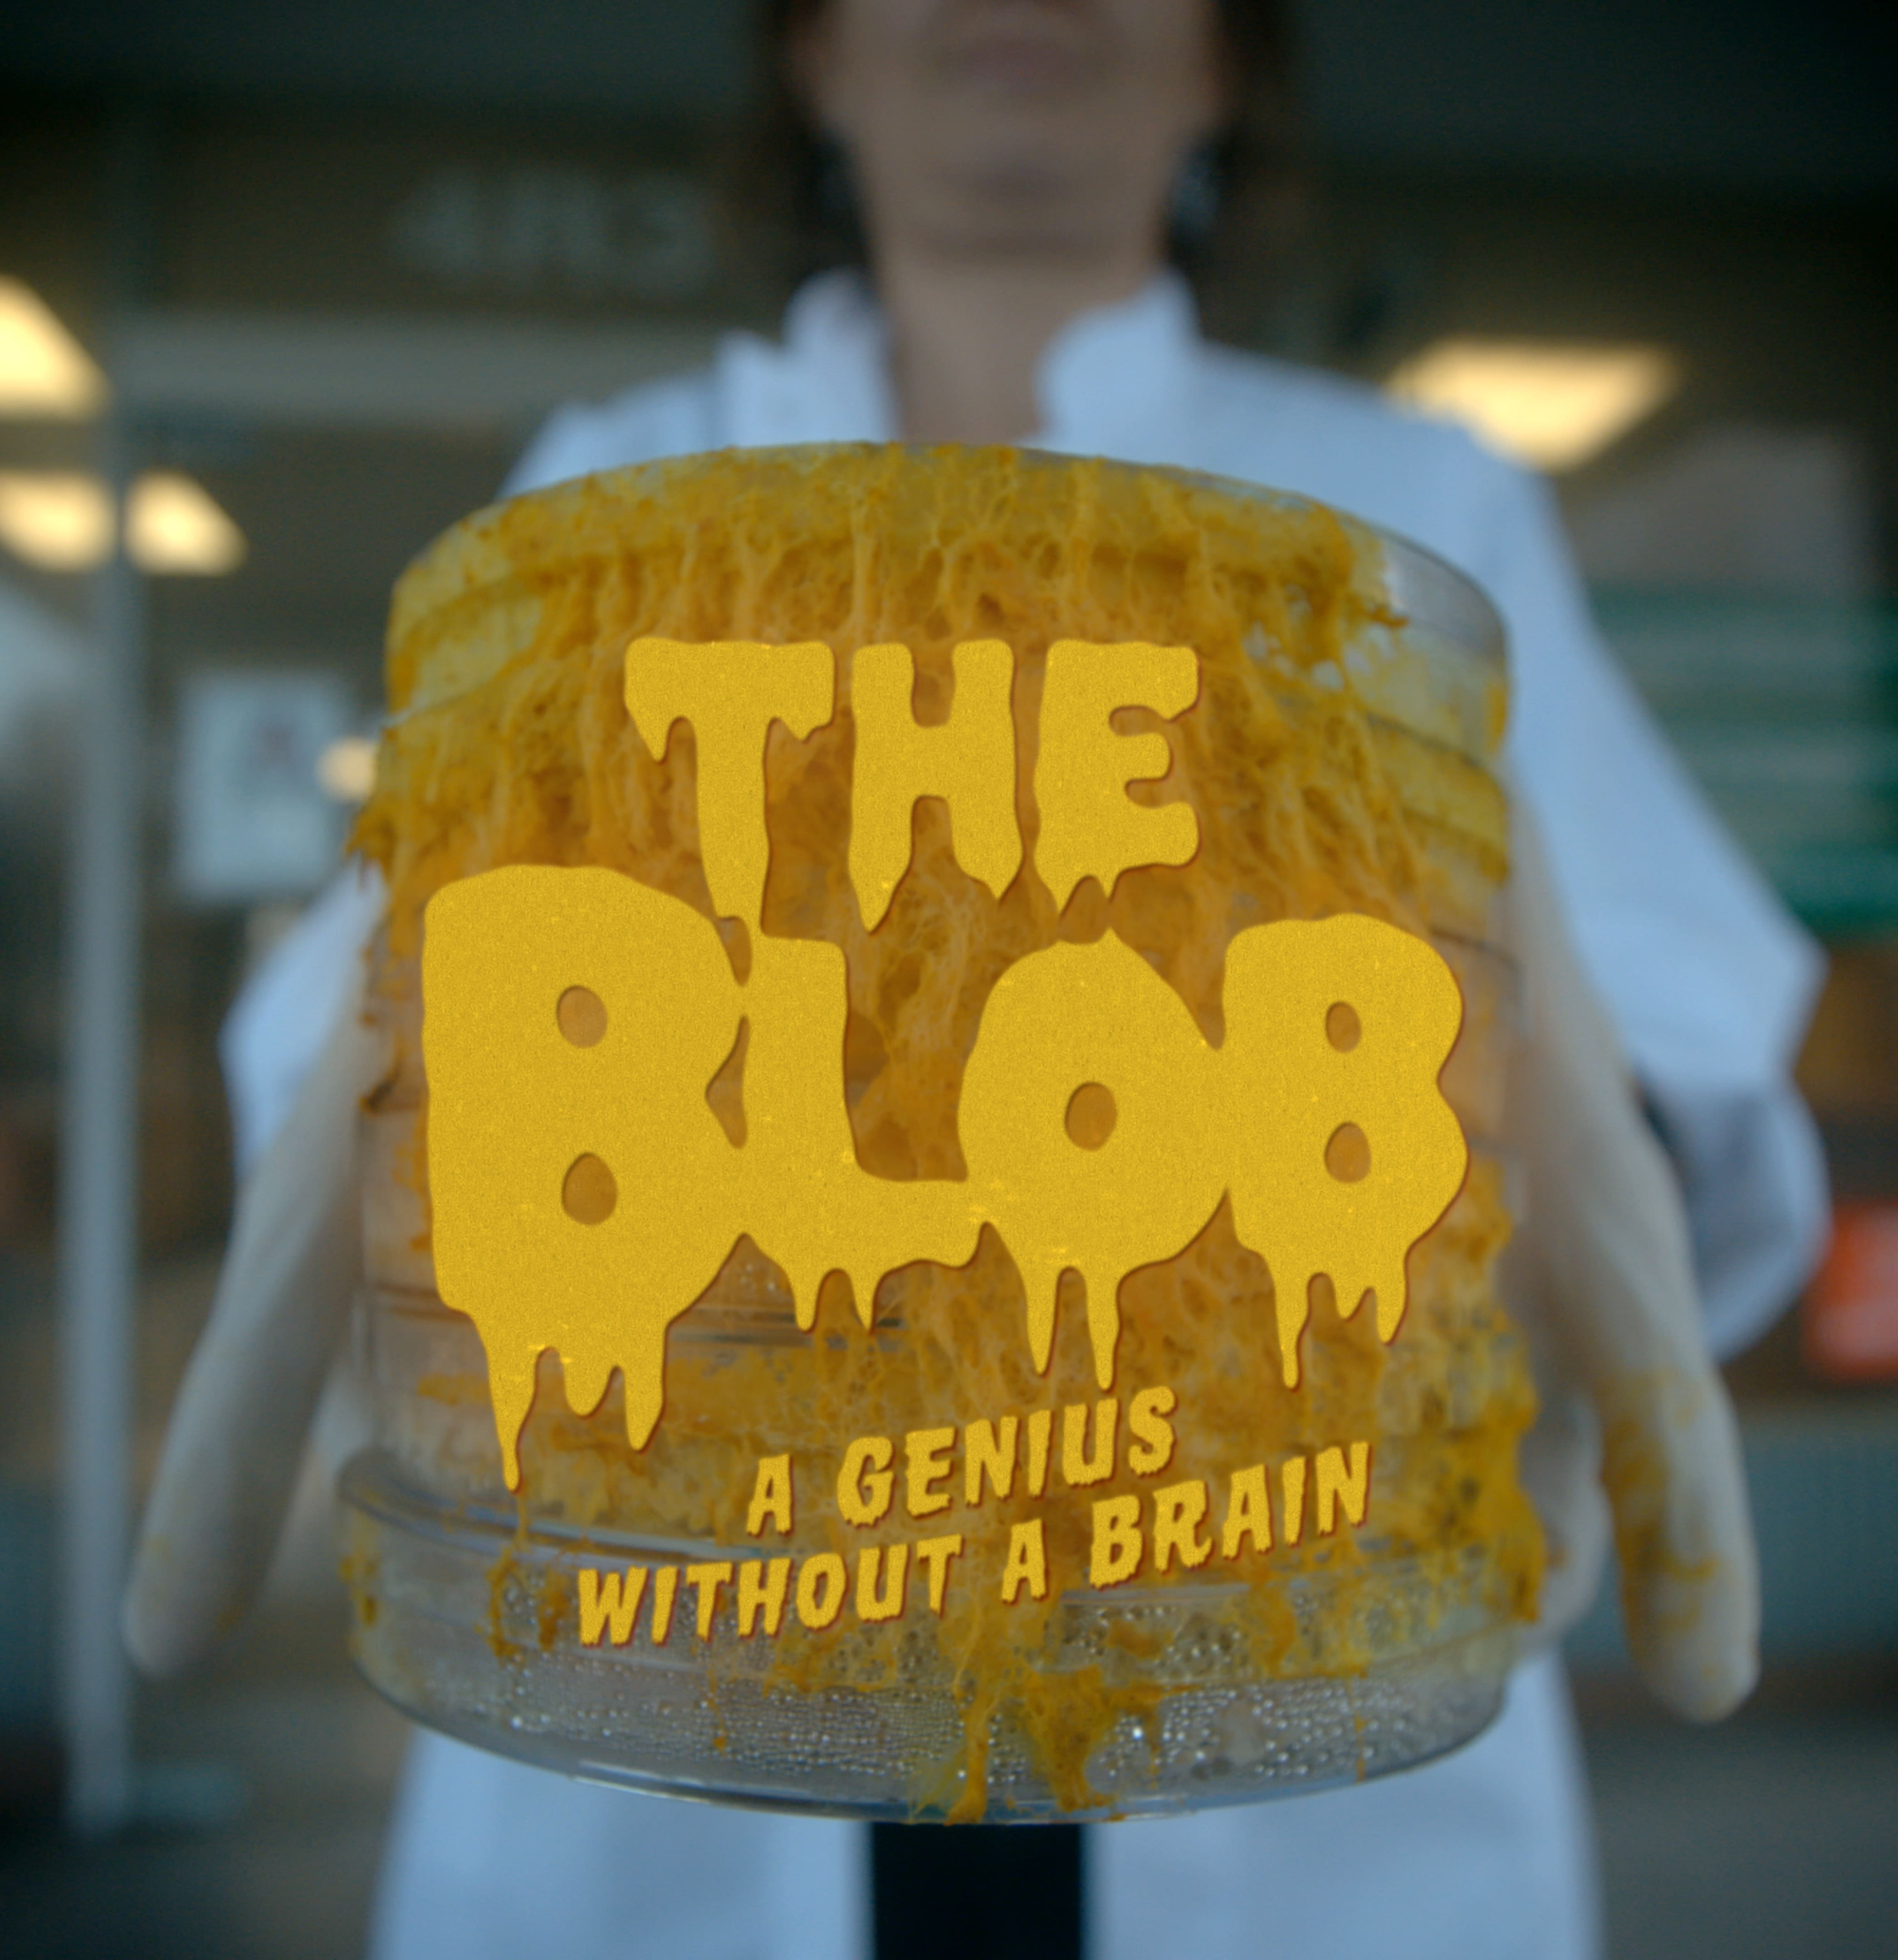 ARTE Distribution sells 'The Blob' to the U.S., Nova 'Secret Mind Of Slime' to premiere in Fall 2020 on PBS